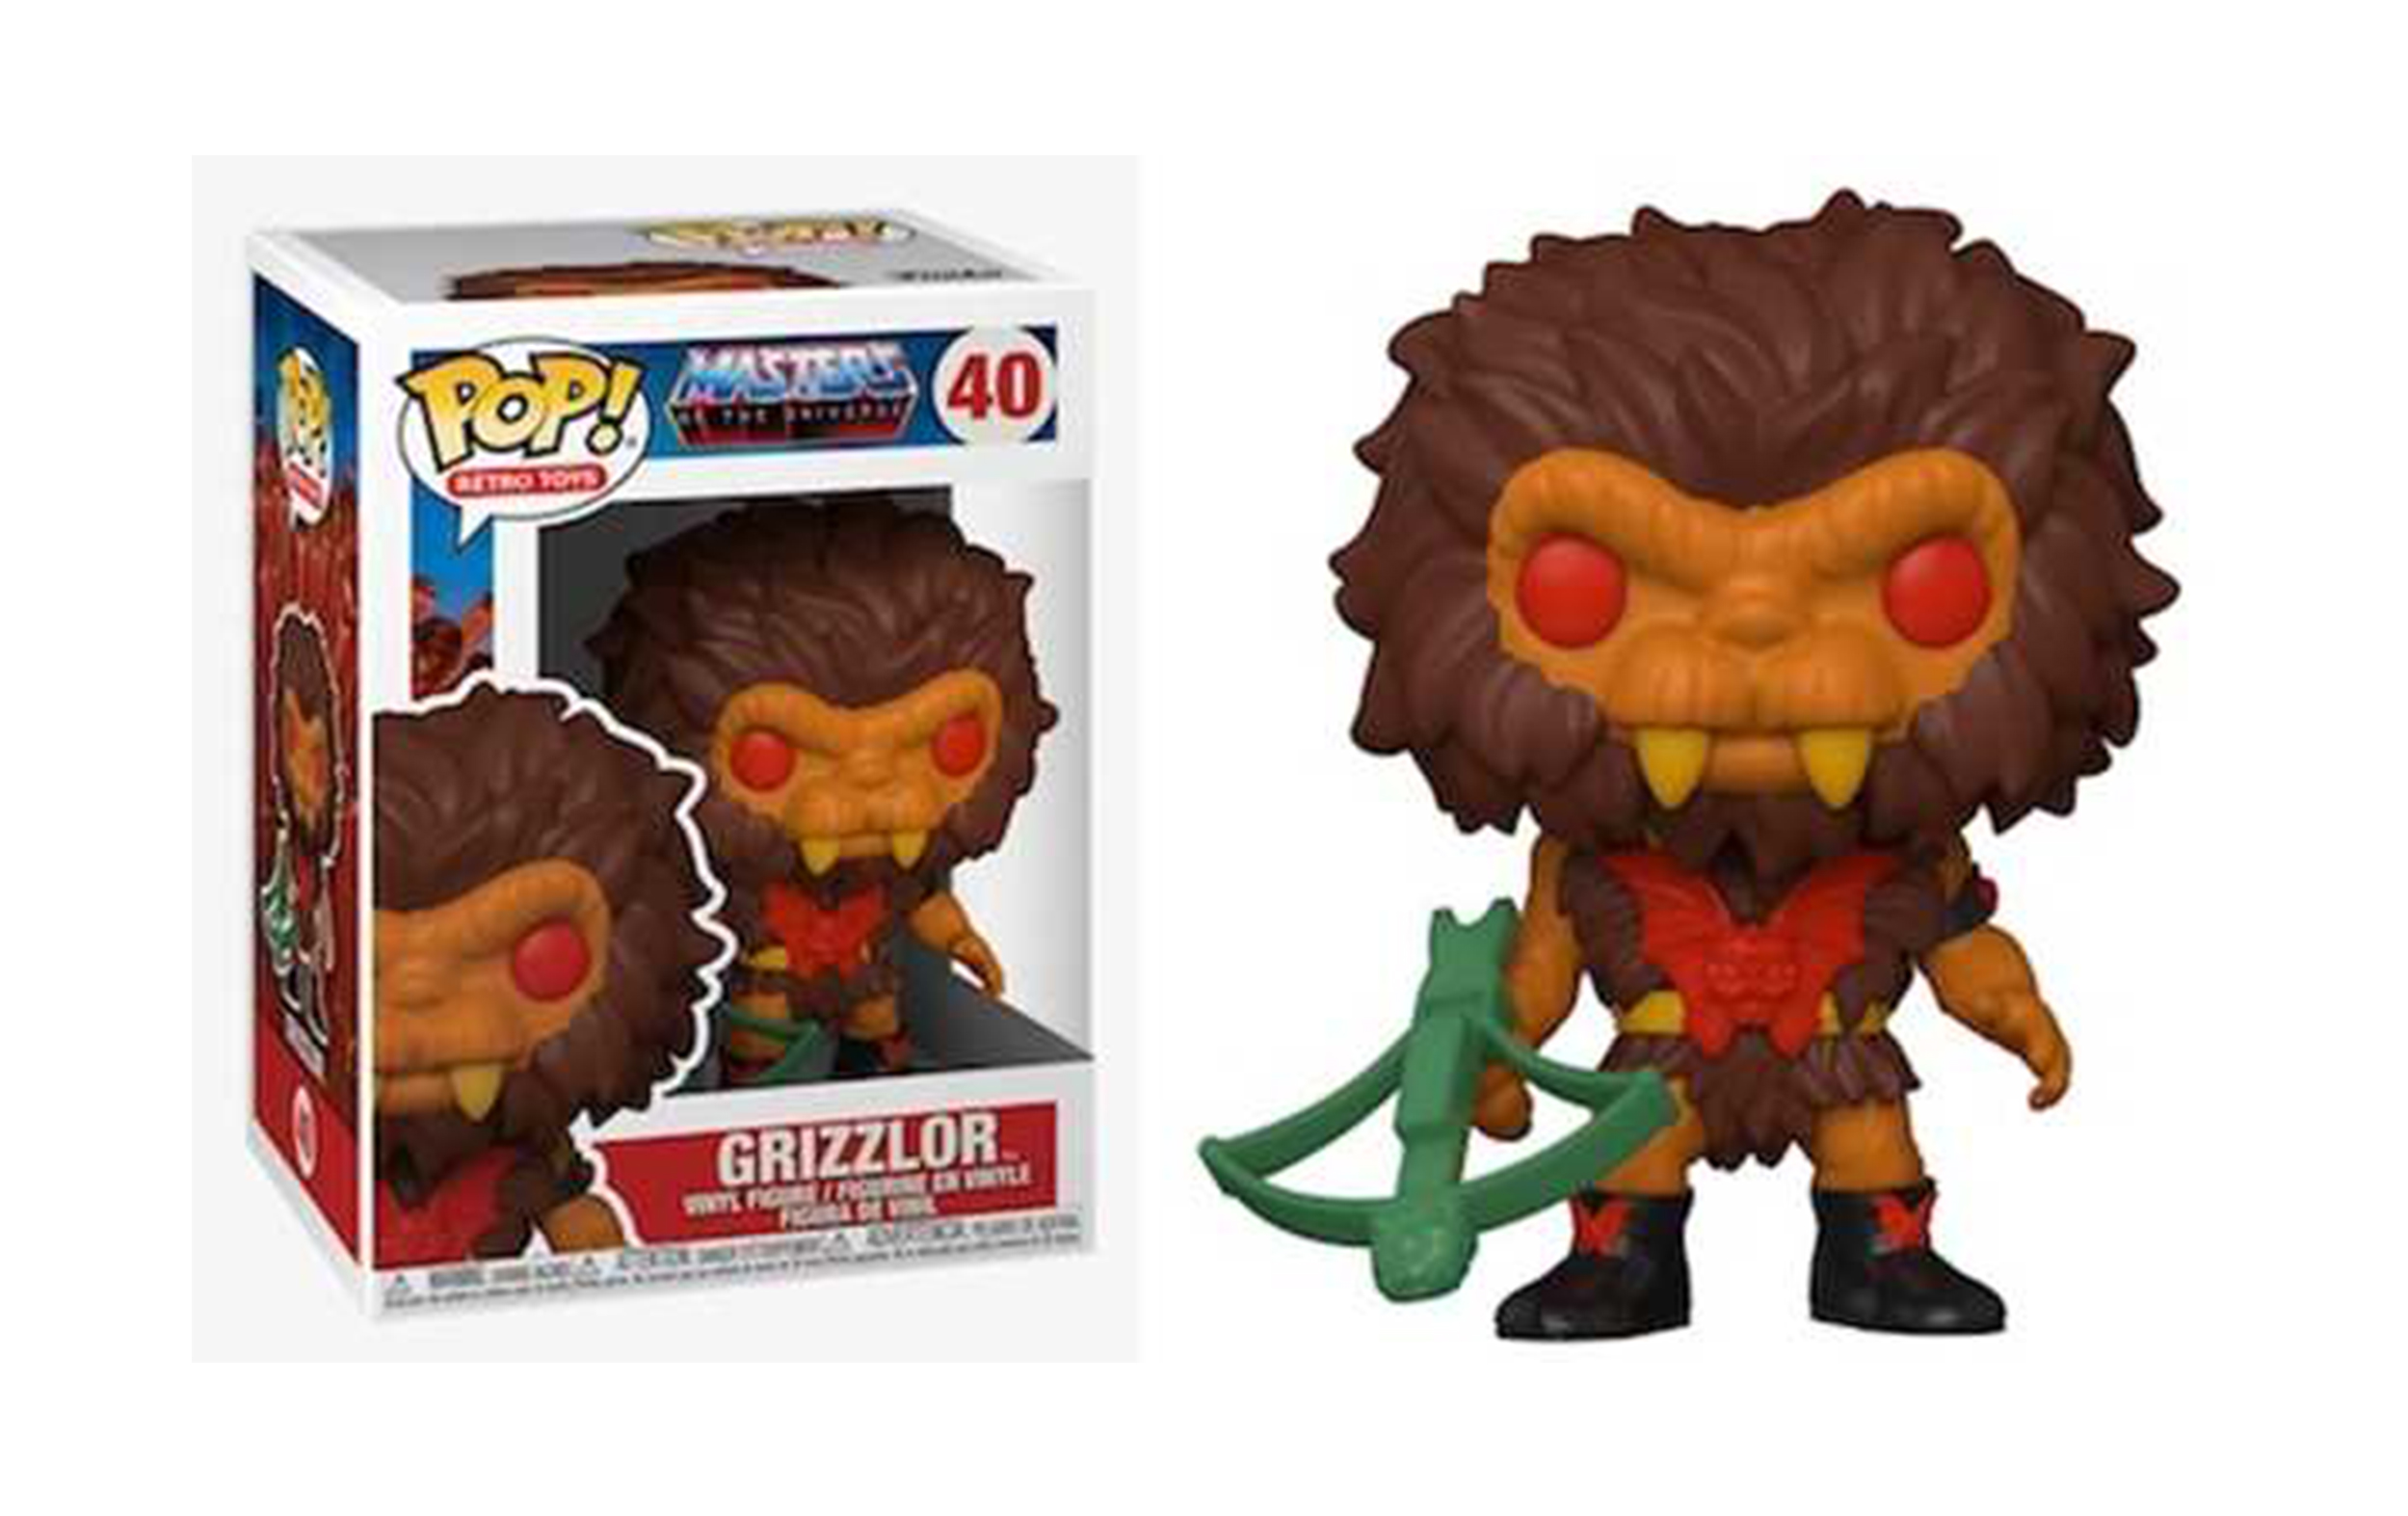 Masters of the Universe Grizzlor 40 Funko POP Vinyl Figure